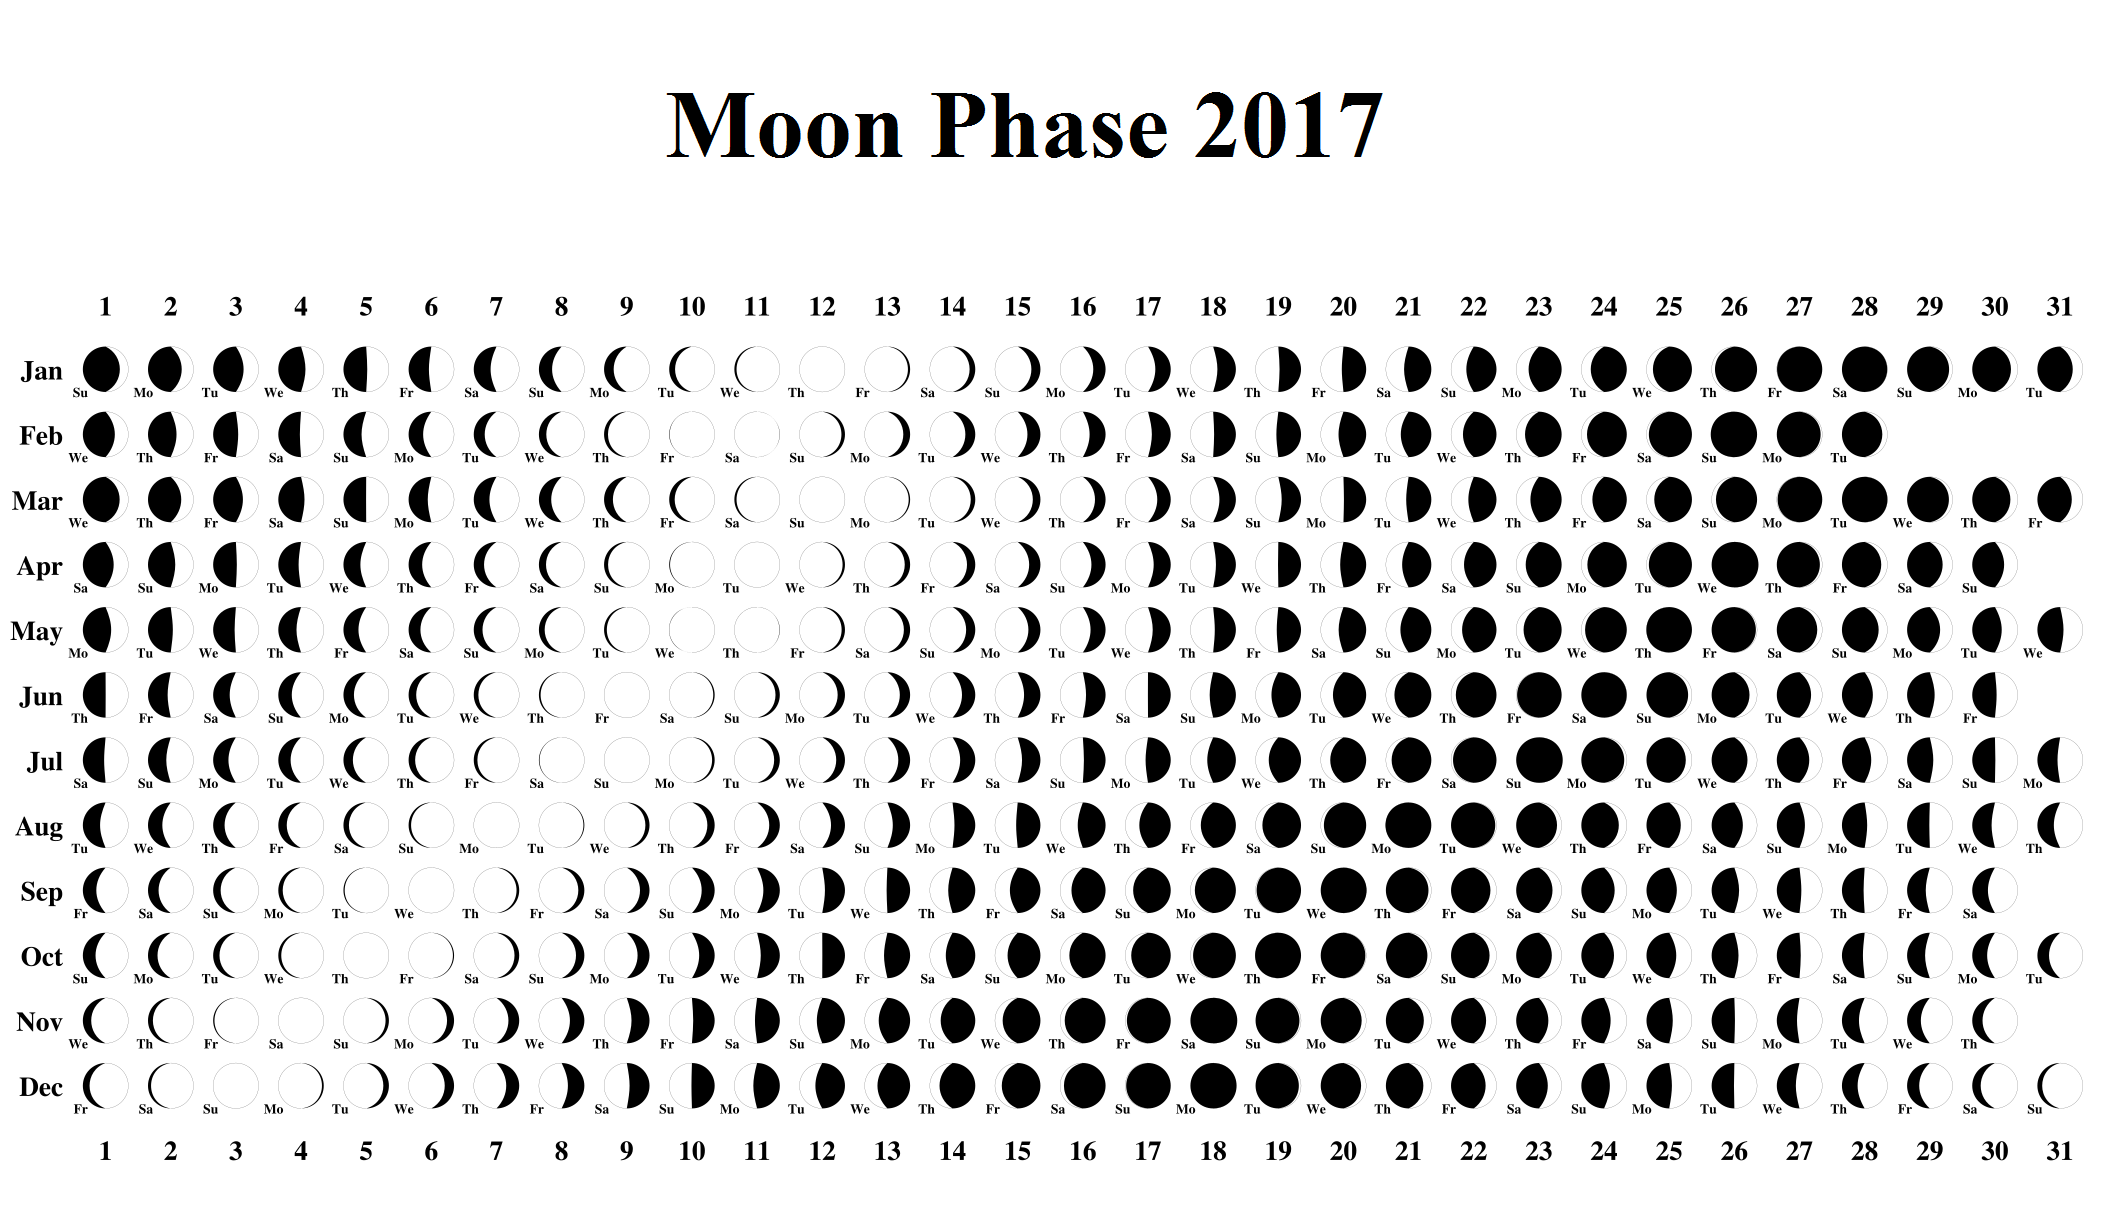 Full moon in June 2017, monthly lunar cycle 25